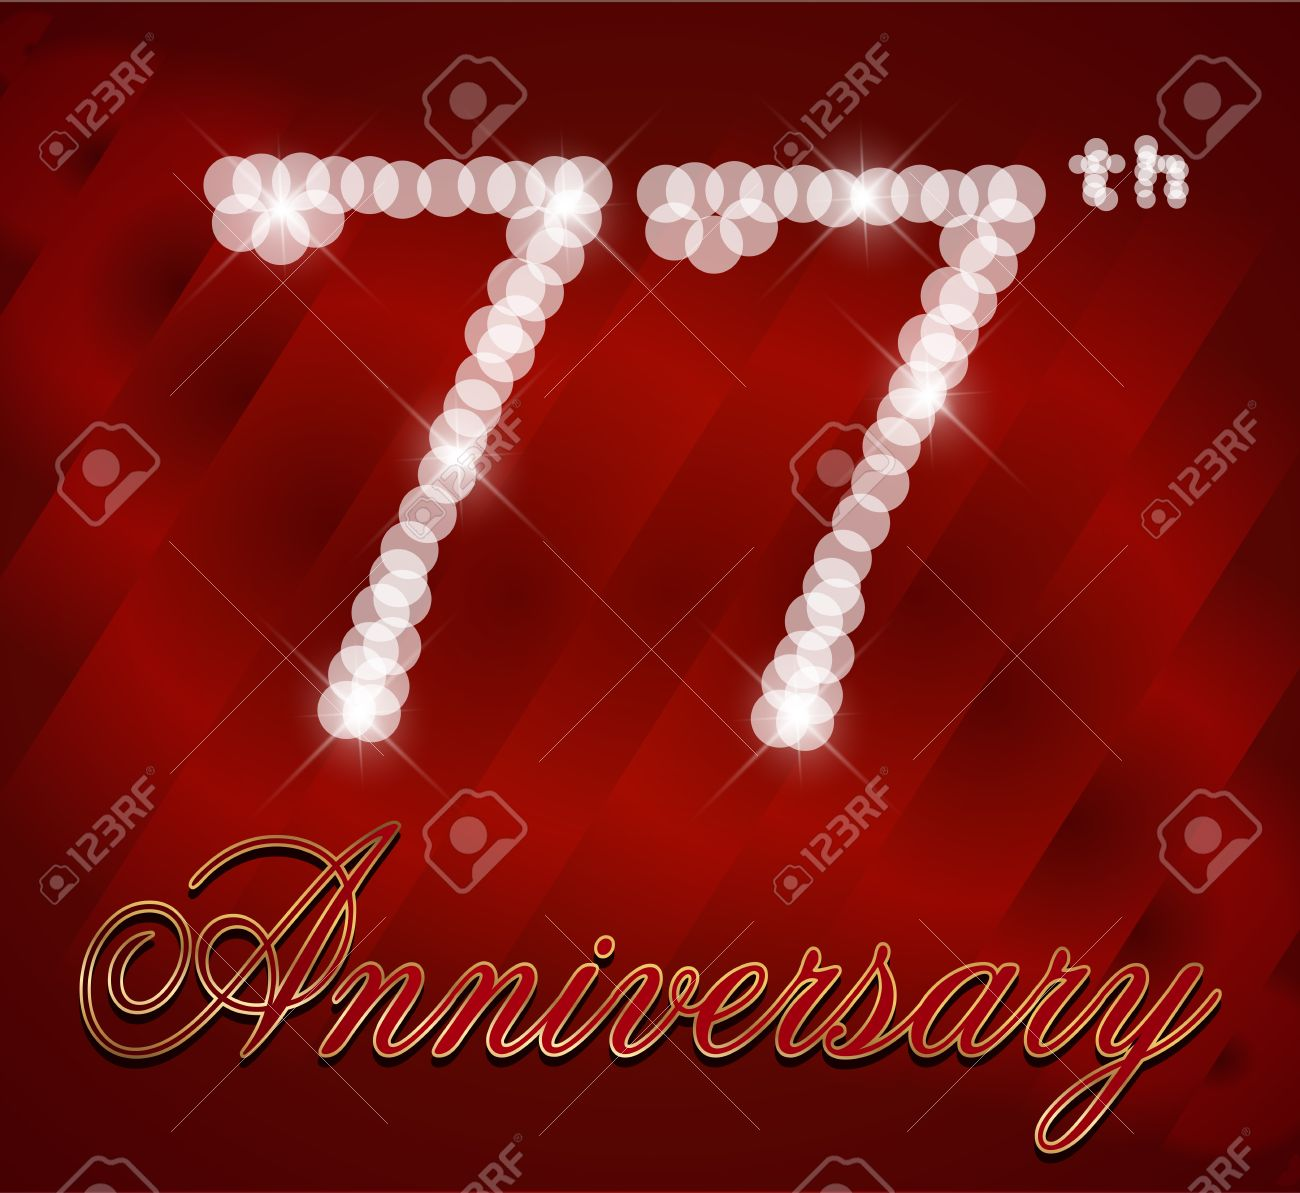 77 Year Happy Birthday Card 77th Vector EPS10 Stock